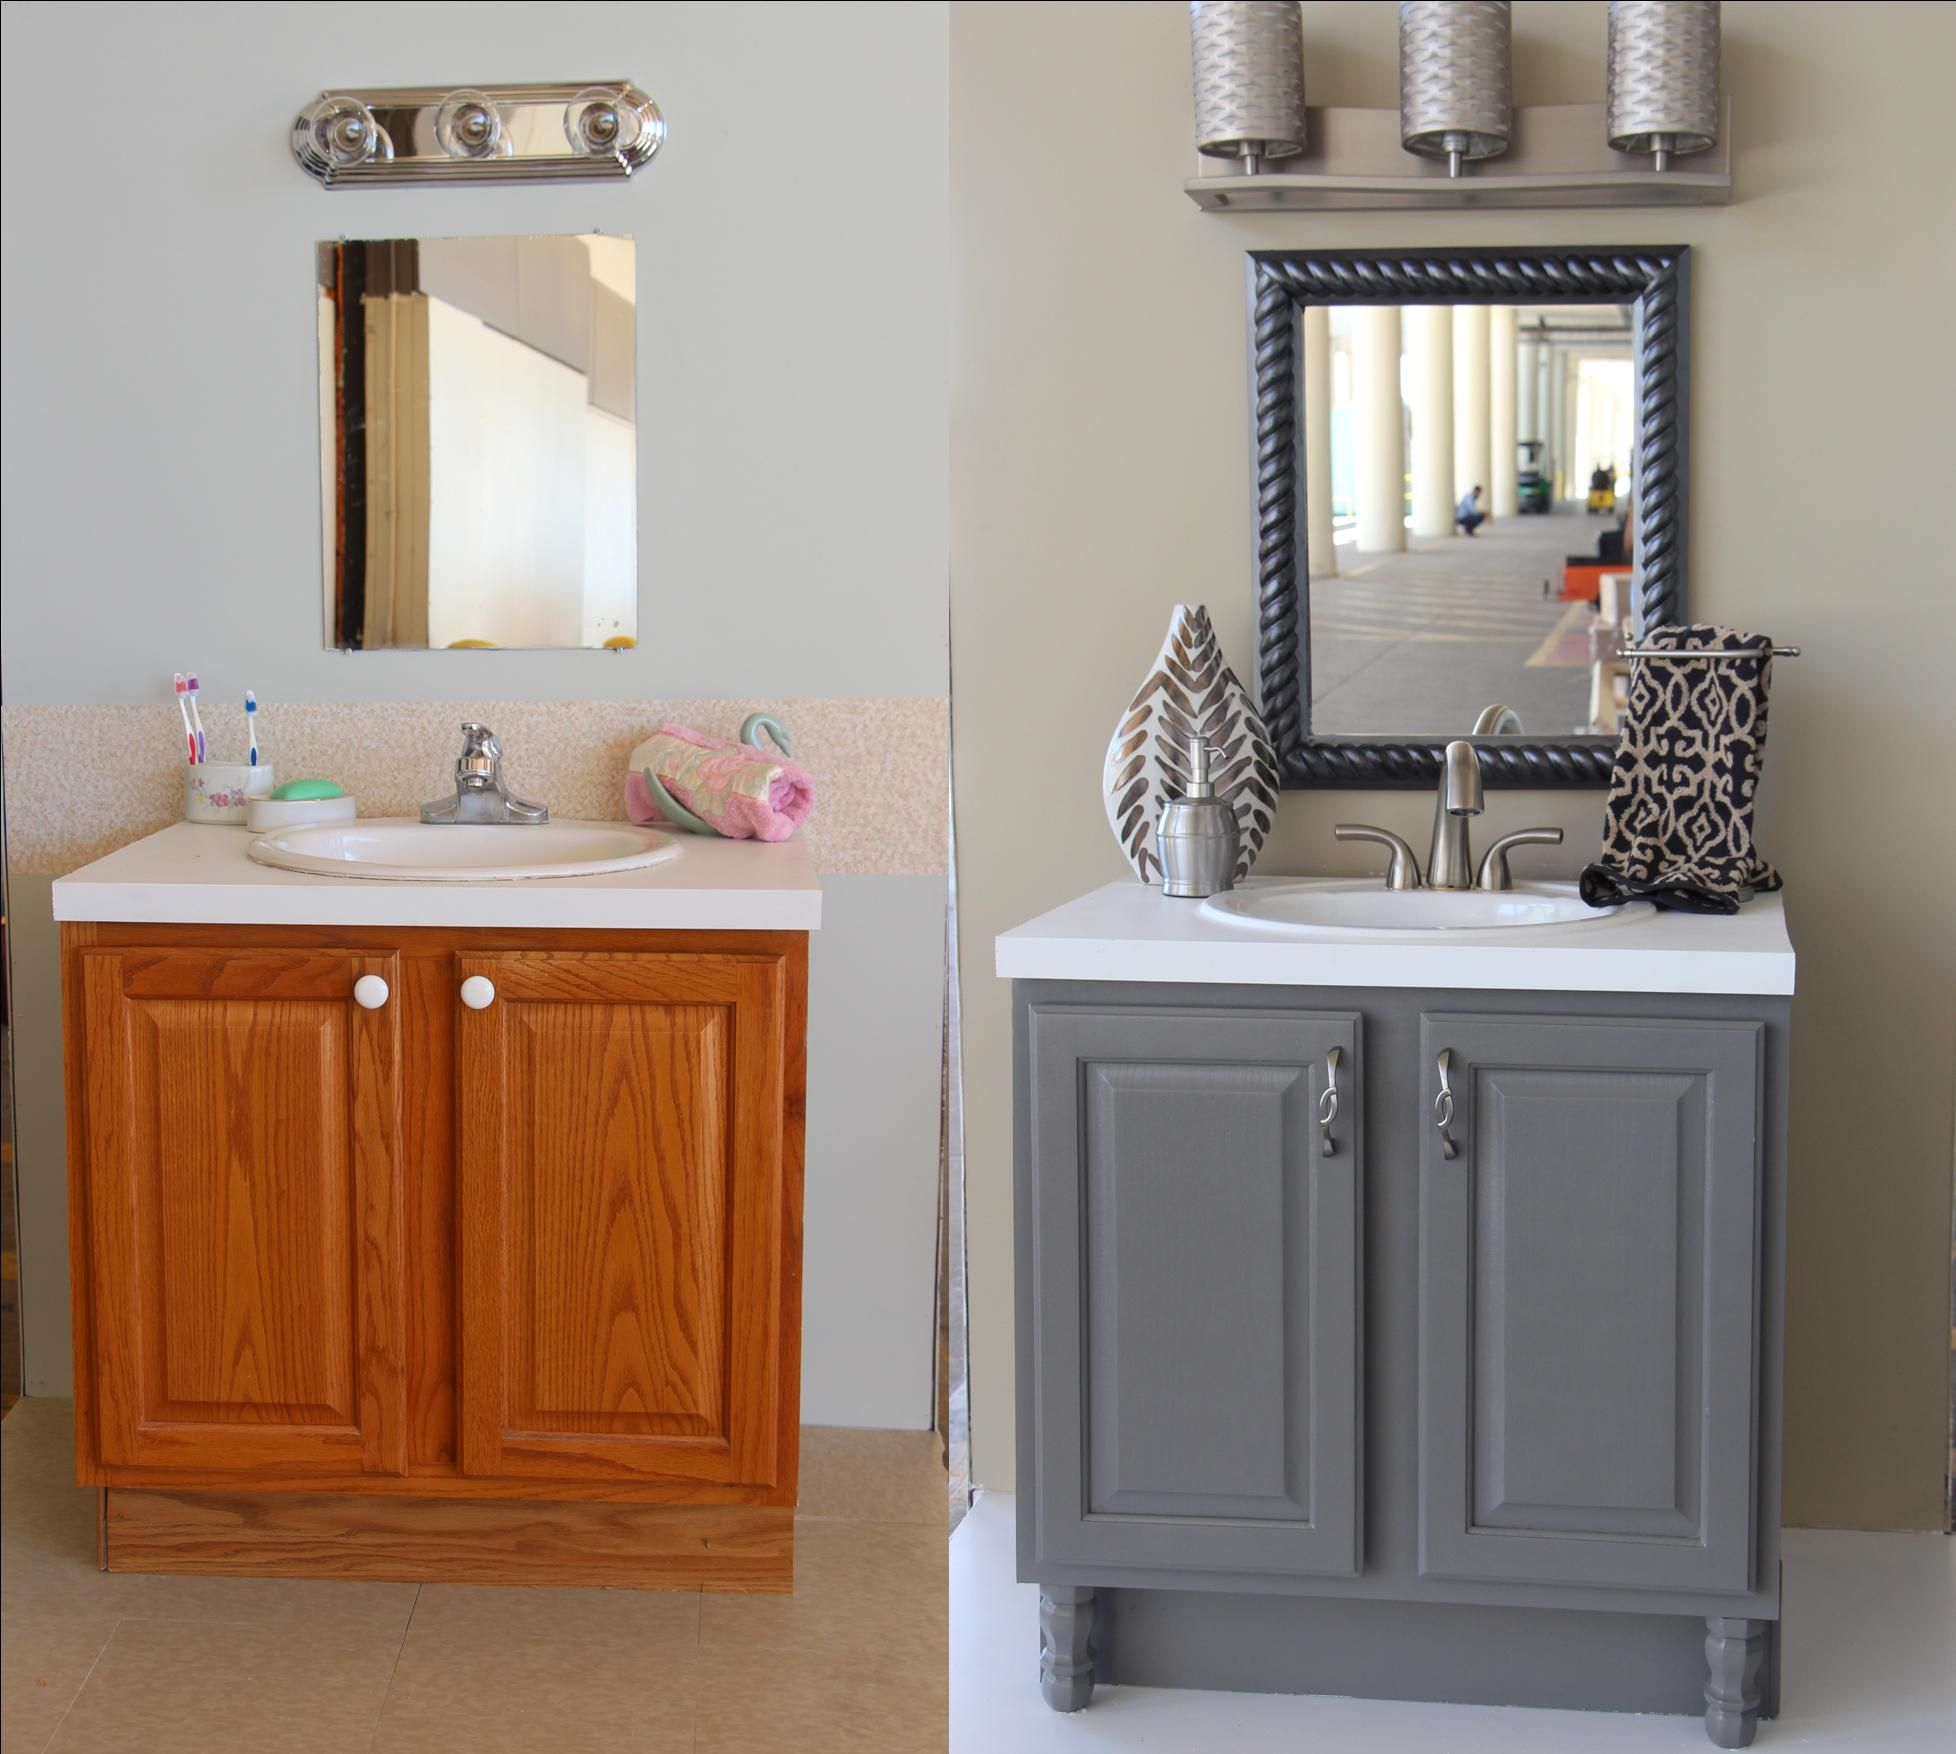 Bathroom Updates You Can Do This Weekend For The Home Grey intended for dimensions 1956 X 1754